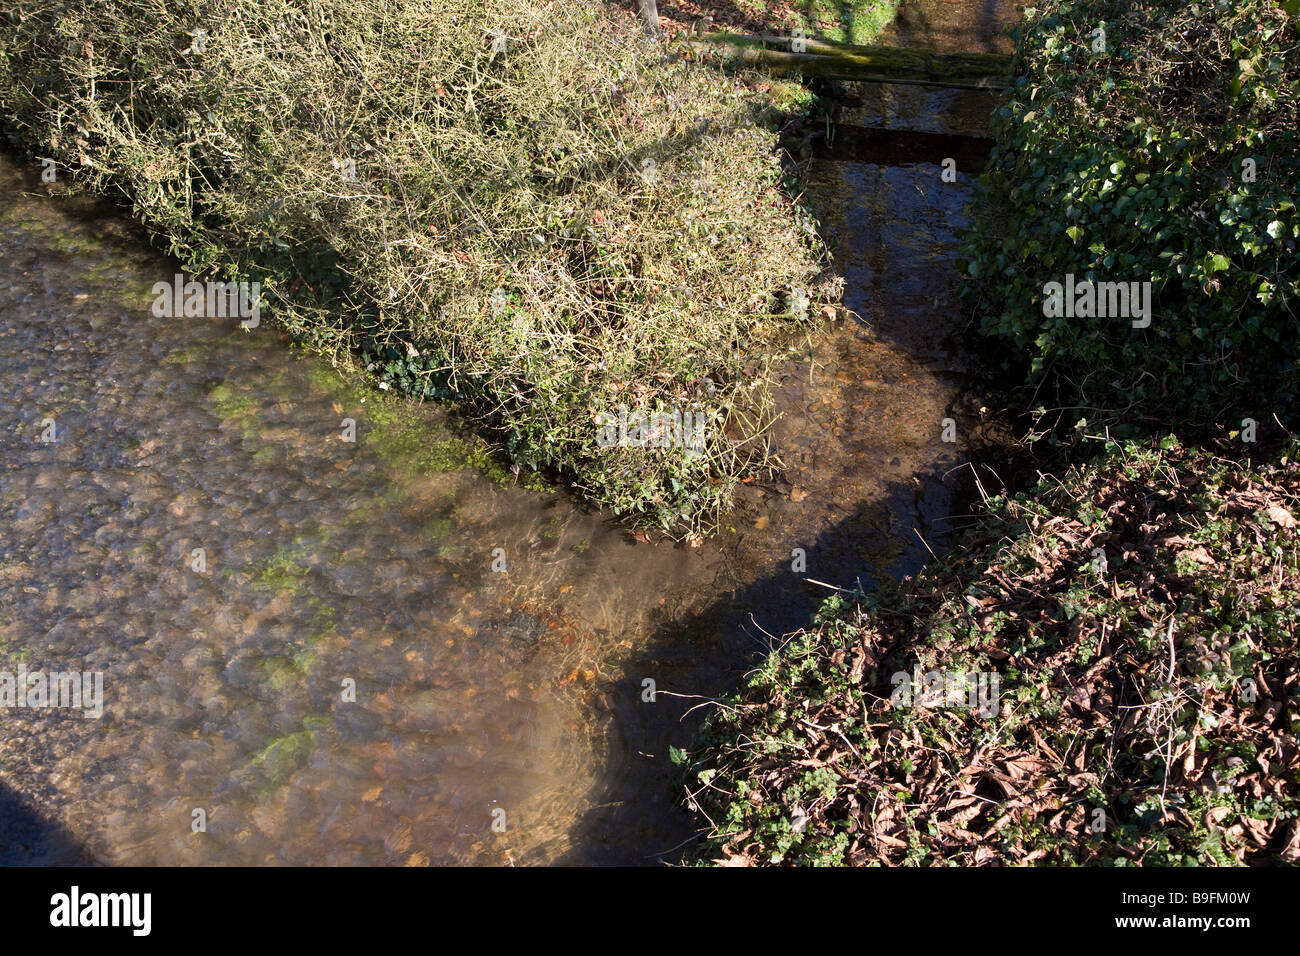 Confluence of two small streams - Stock Image